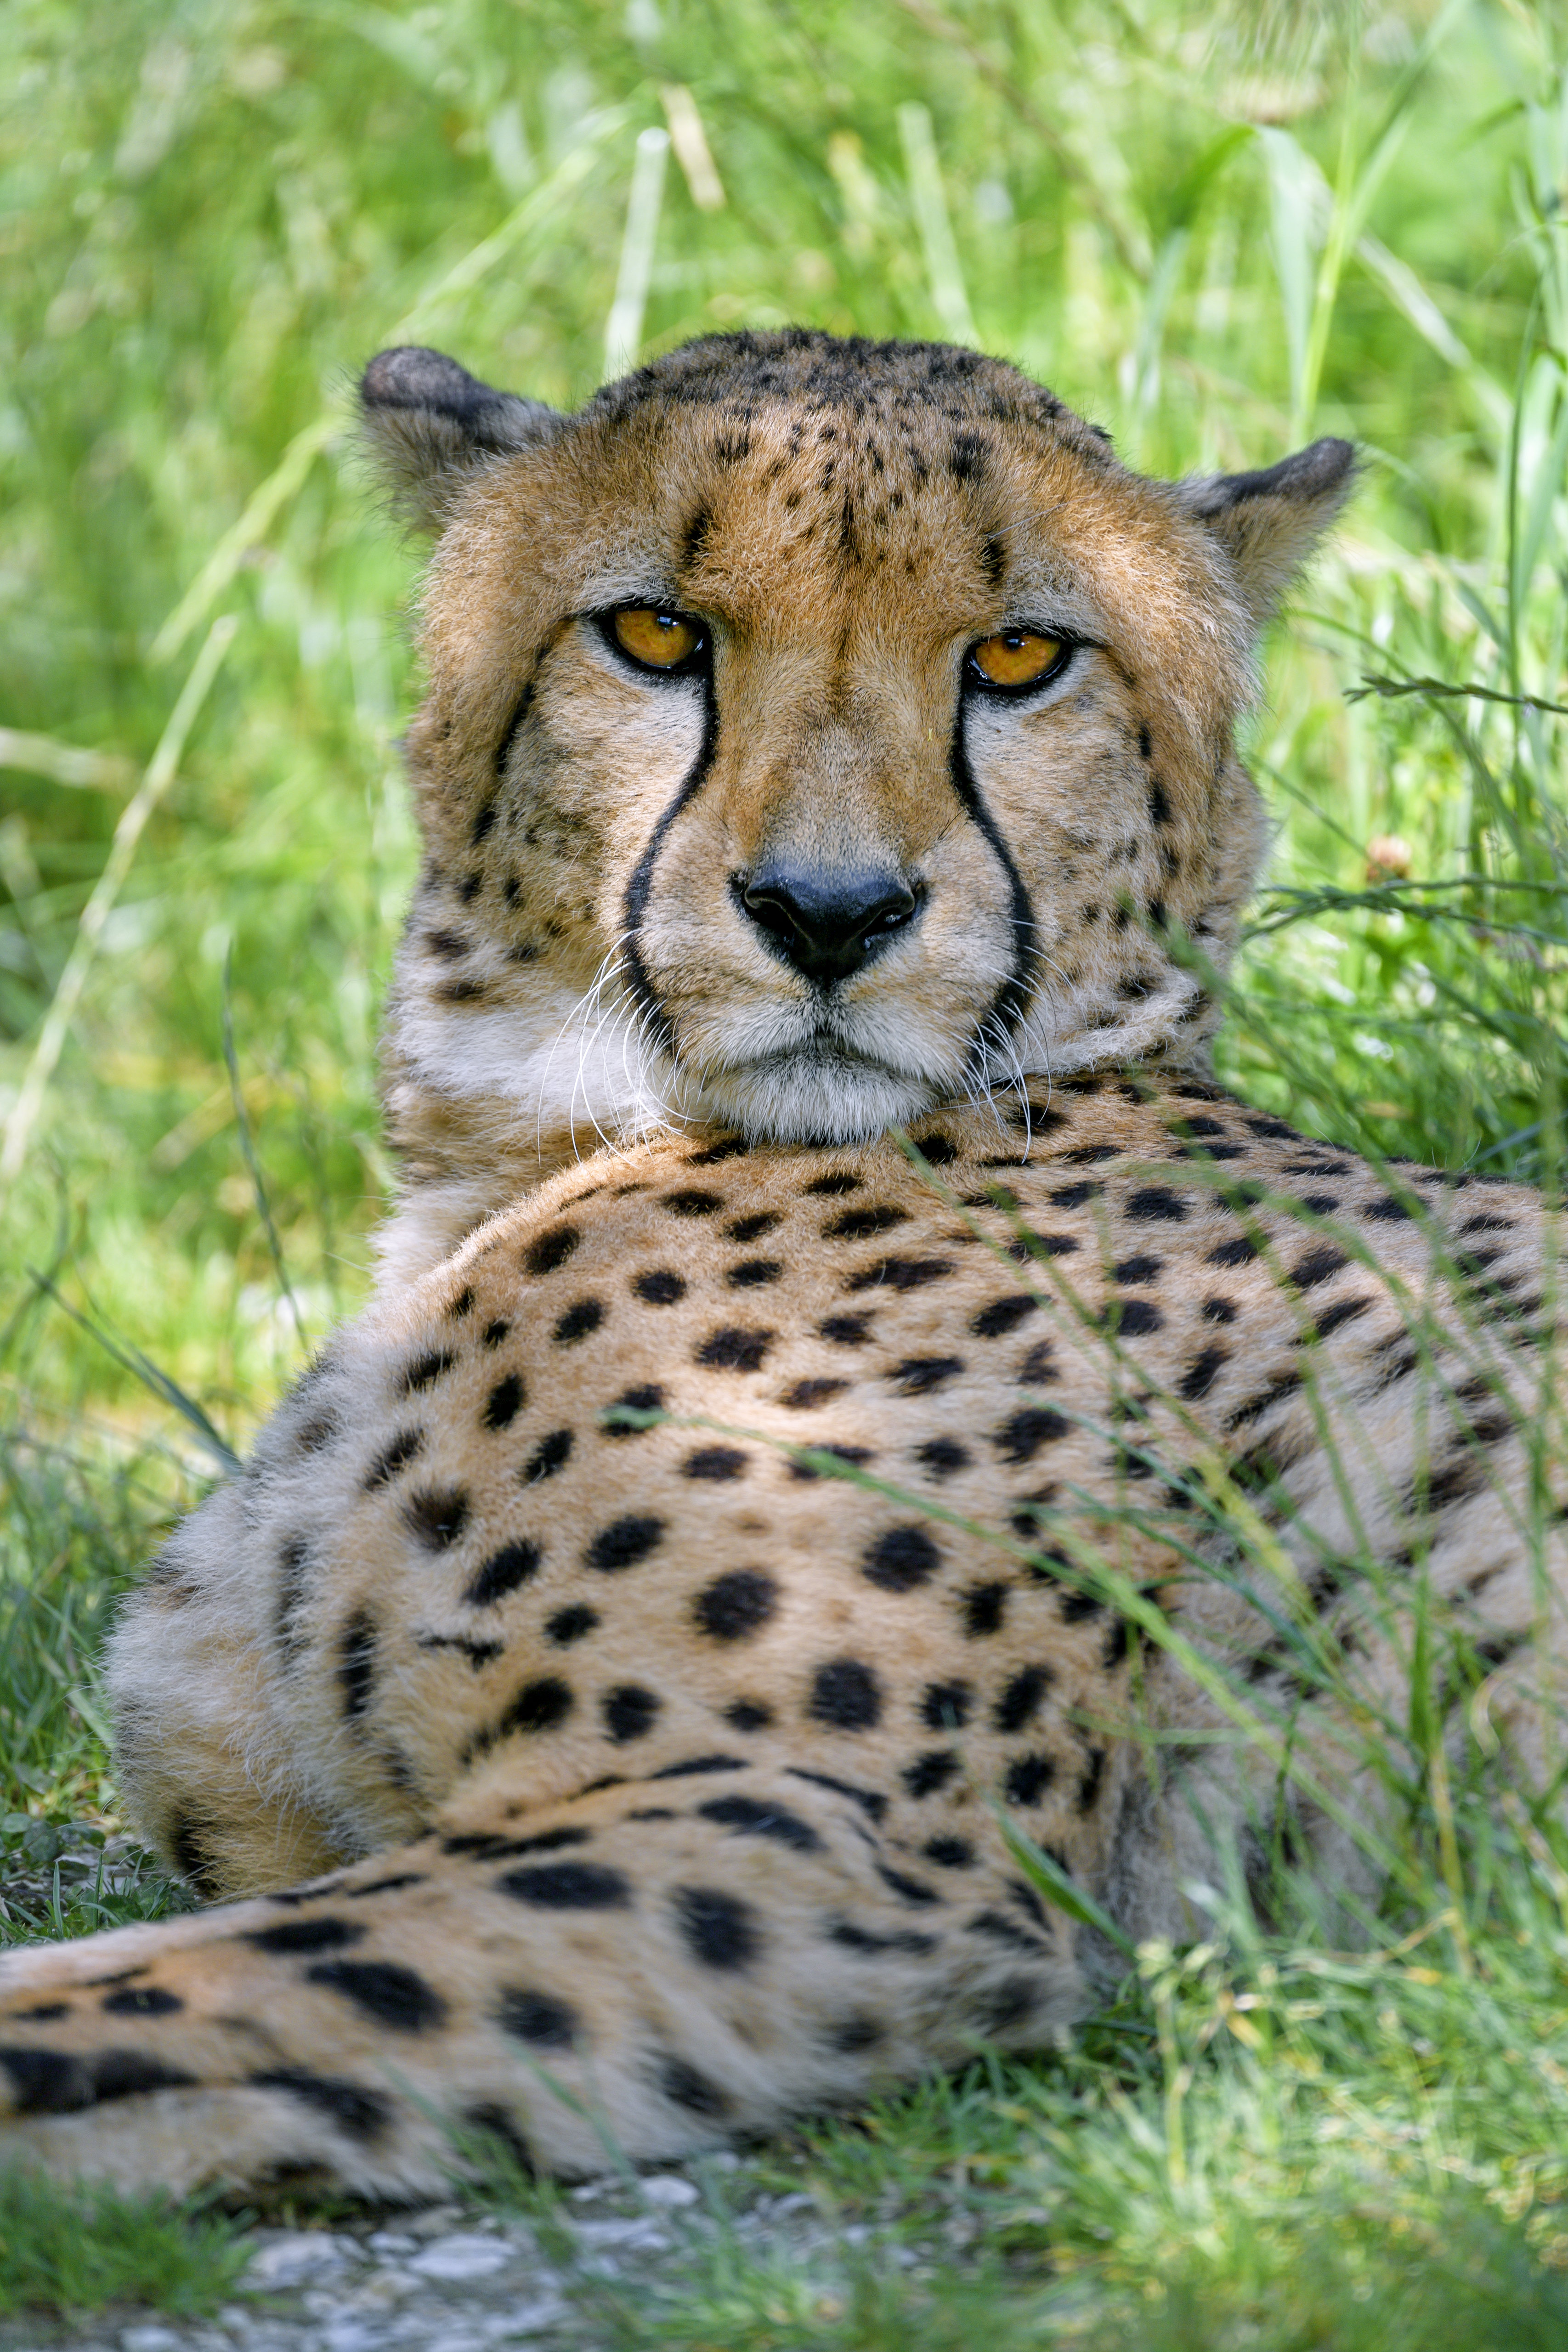 150942 download wallpaper Animals, Cheetah, Predator, Sight, Opinion, Muzzle, Big Cat screensavers and pictures for free